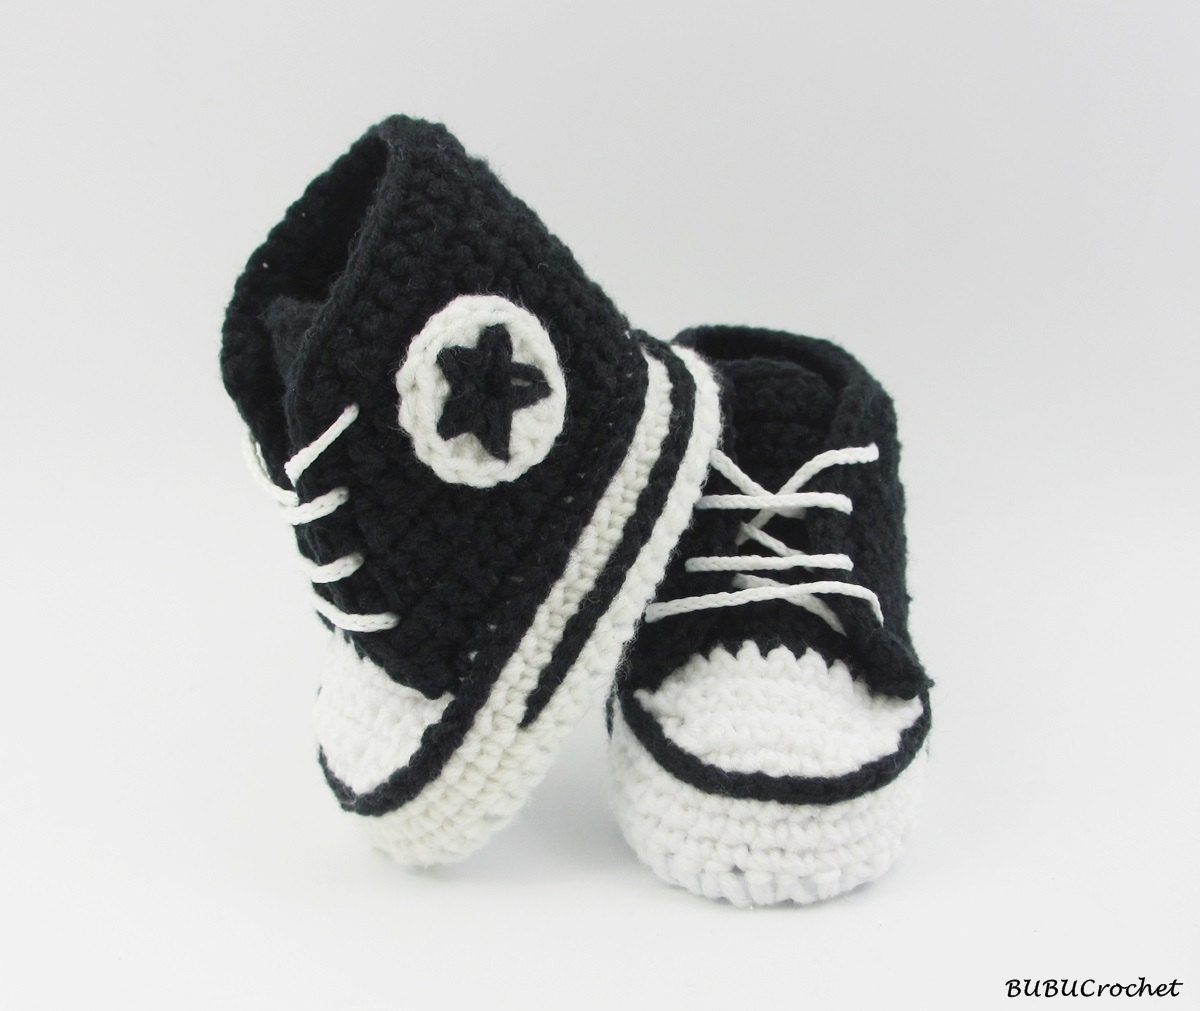 black crochet baby converse baby shoes baby sneakers by